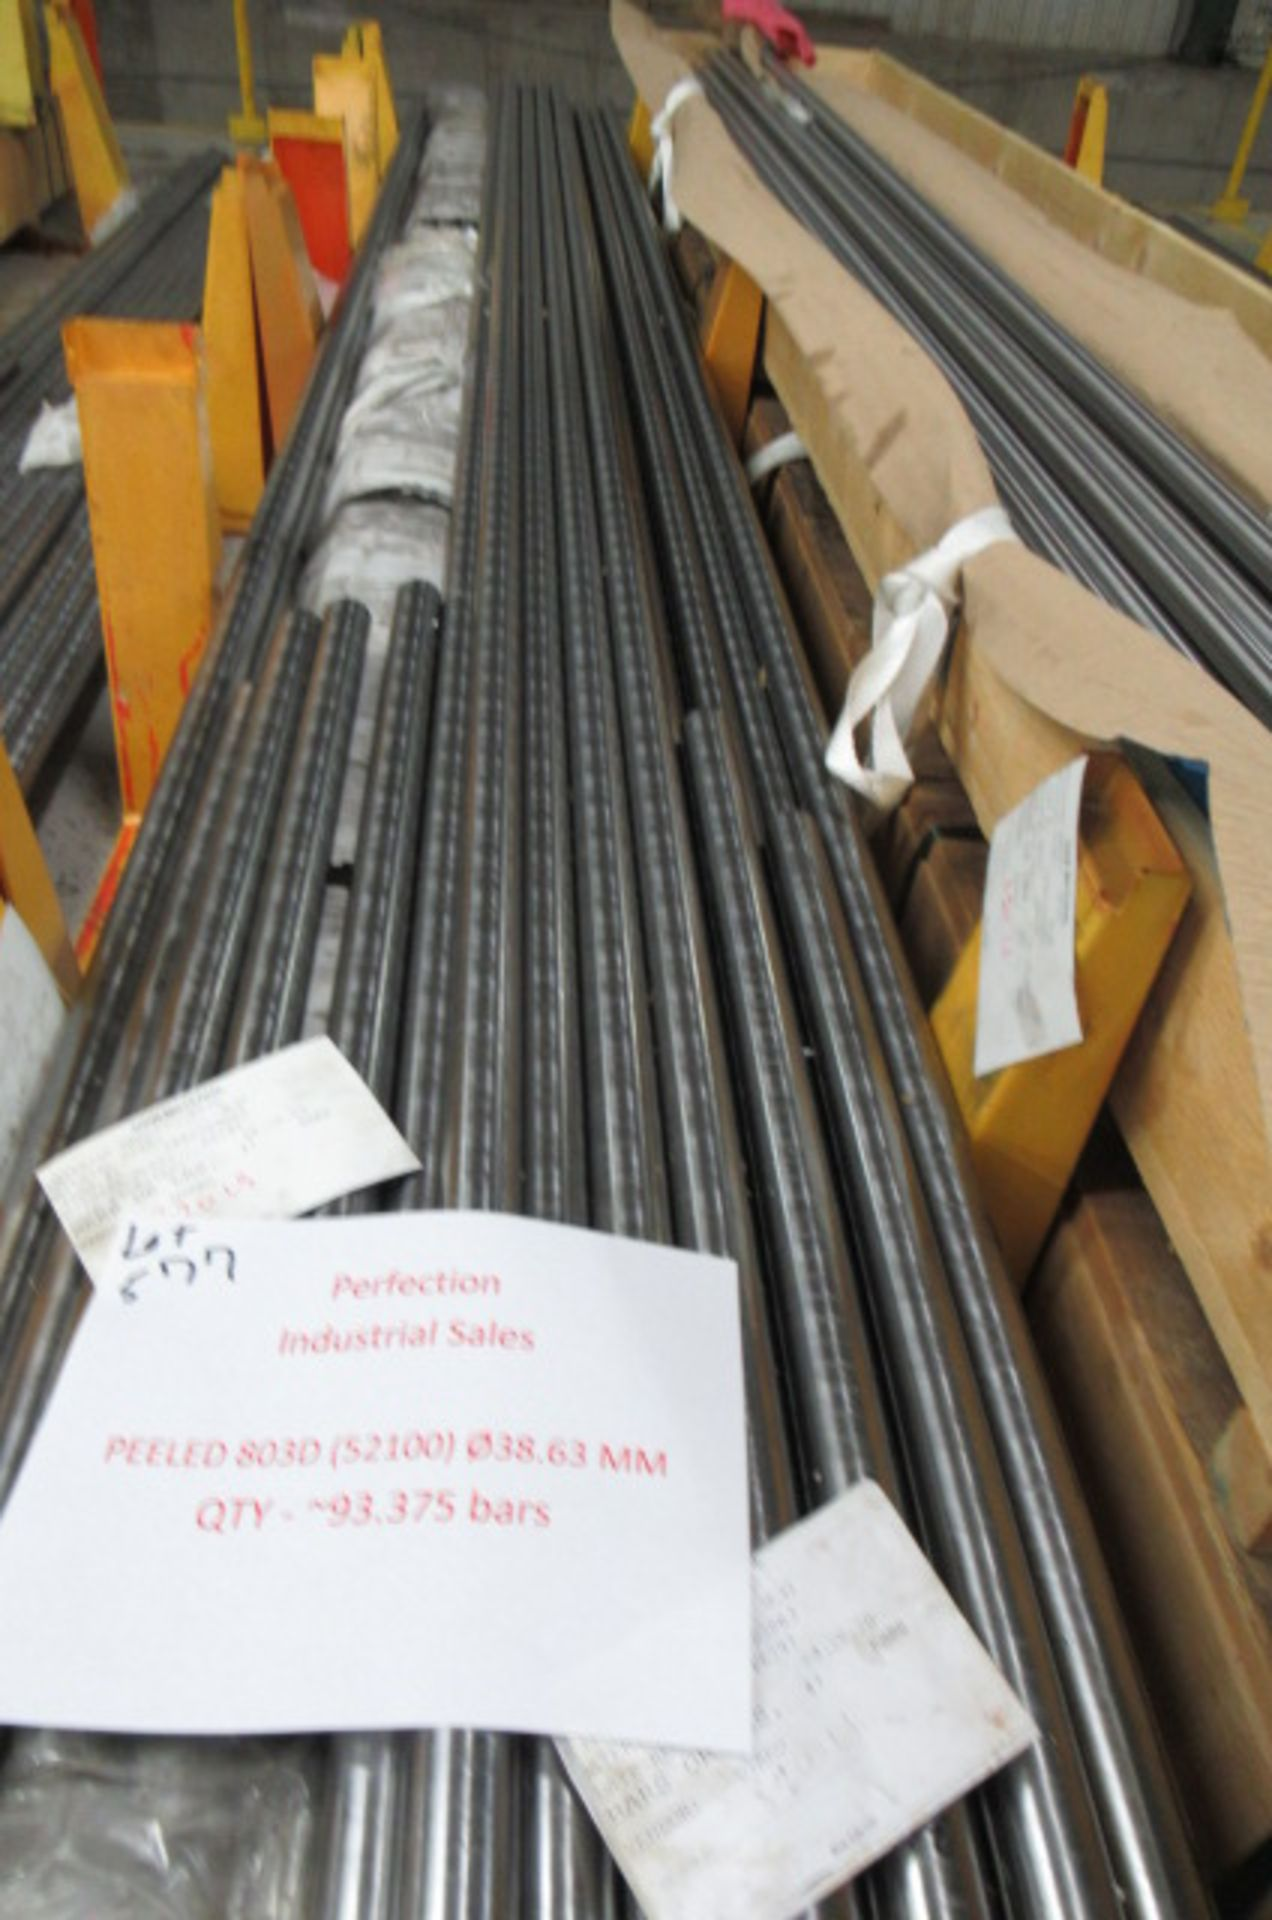 Lot steel round stock Peeled 803D (52100) 38.63mm qty 93 - Image 3 of 3